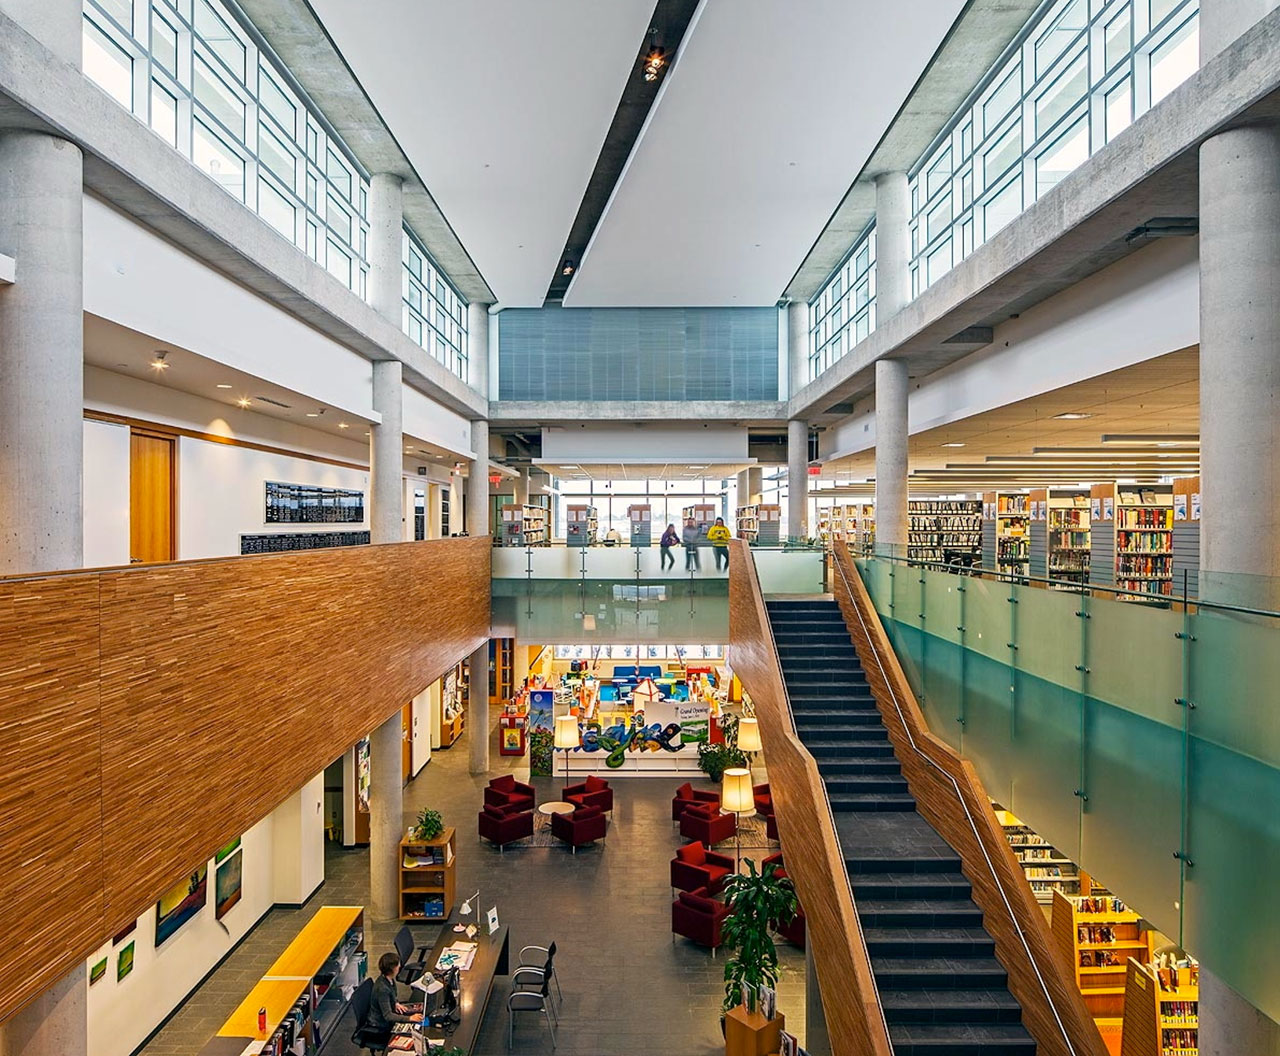 Bradford West Gwillimbury Library & Cultural Centre, Bradford   Bradford West Gwillimbury Library and Cultural Centre consists of a 40,000 square foot two-storey building. It is located on Holland Street West as part of the Bradford West Gwillimbury Civic Centre project.  (click for more)   Number of Storeys:   2 Size: 40,000 sq. ft.  Photos Courtesy of BNC Architects